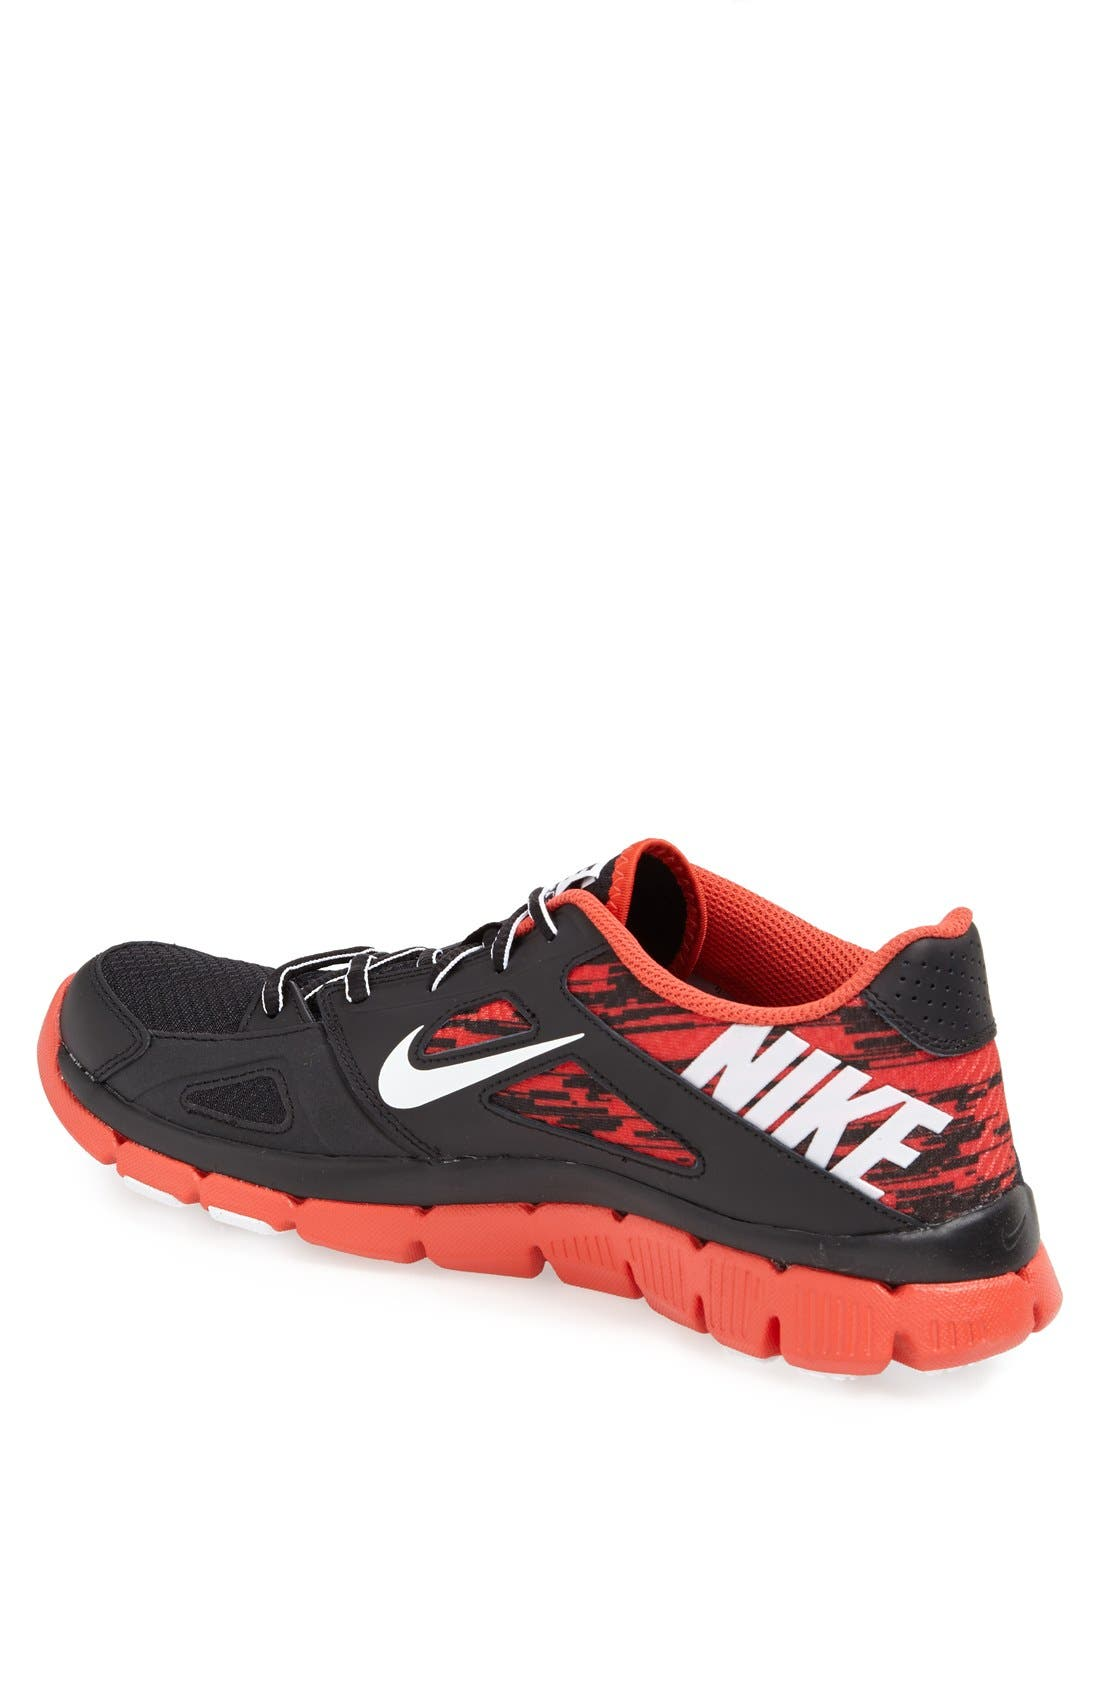 Alternate Image 2  - Nike 'Flex Supreme TR 2' Training Shoe (Men)